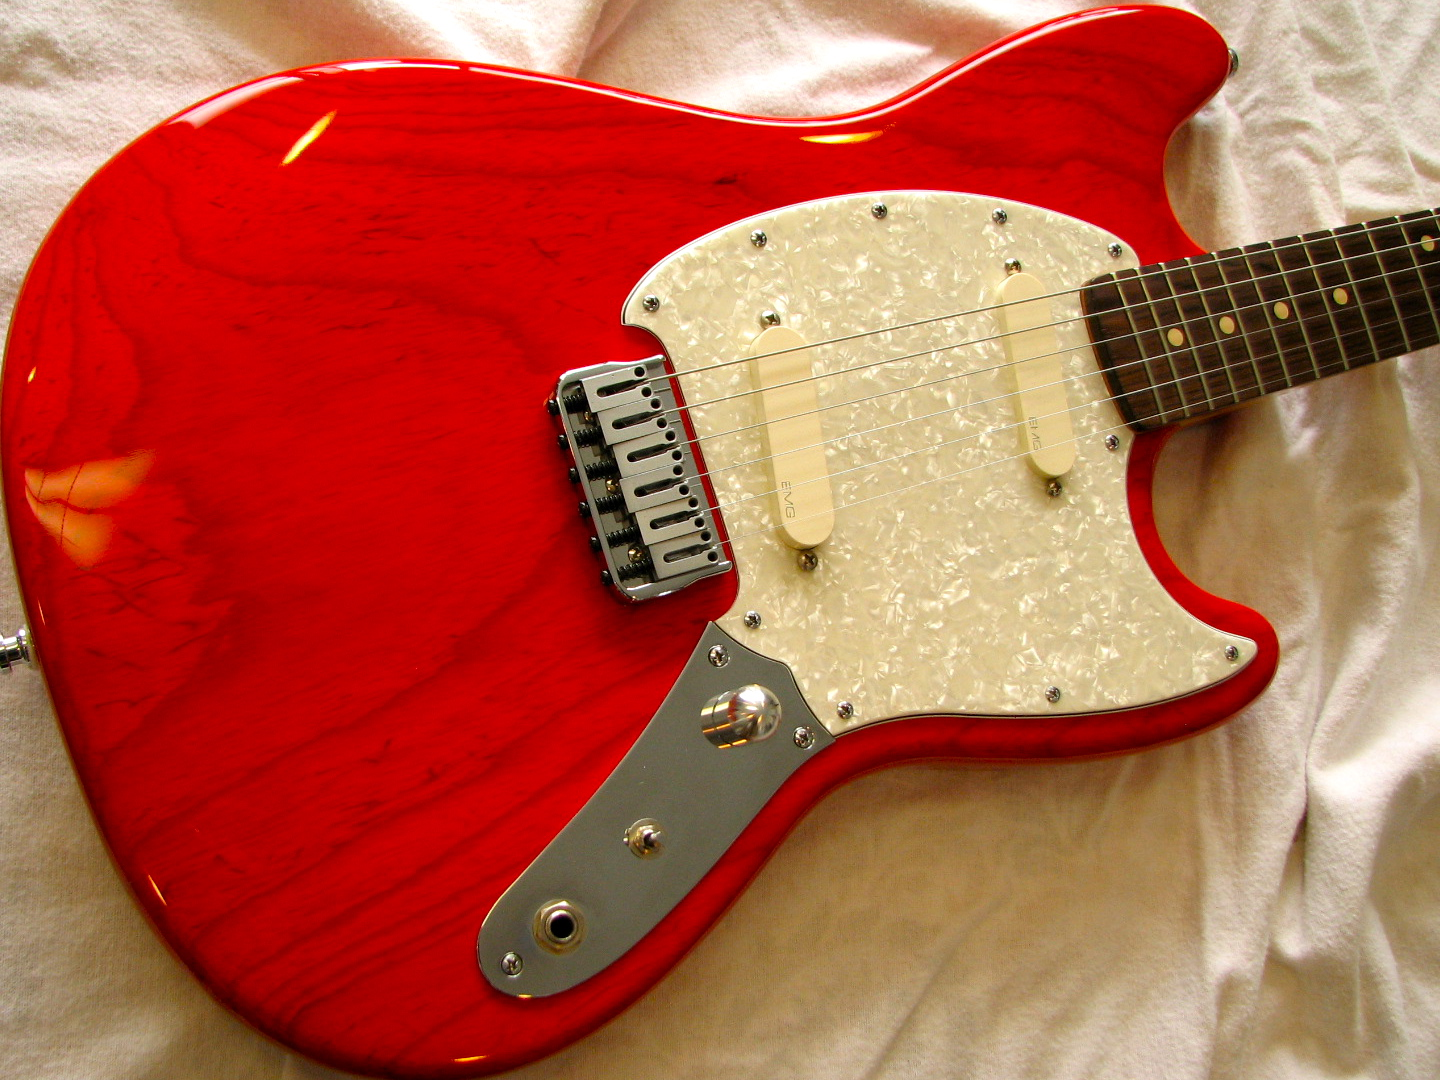 This was a custom one-off Musicmaster-style guitar